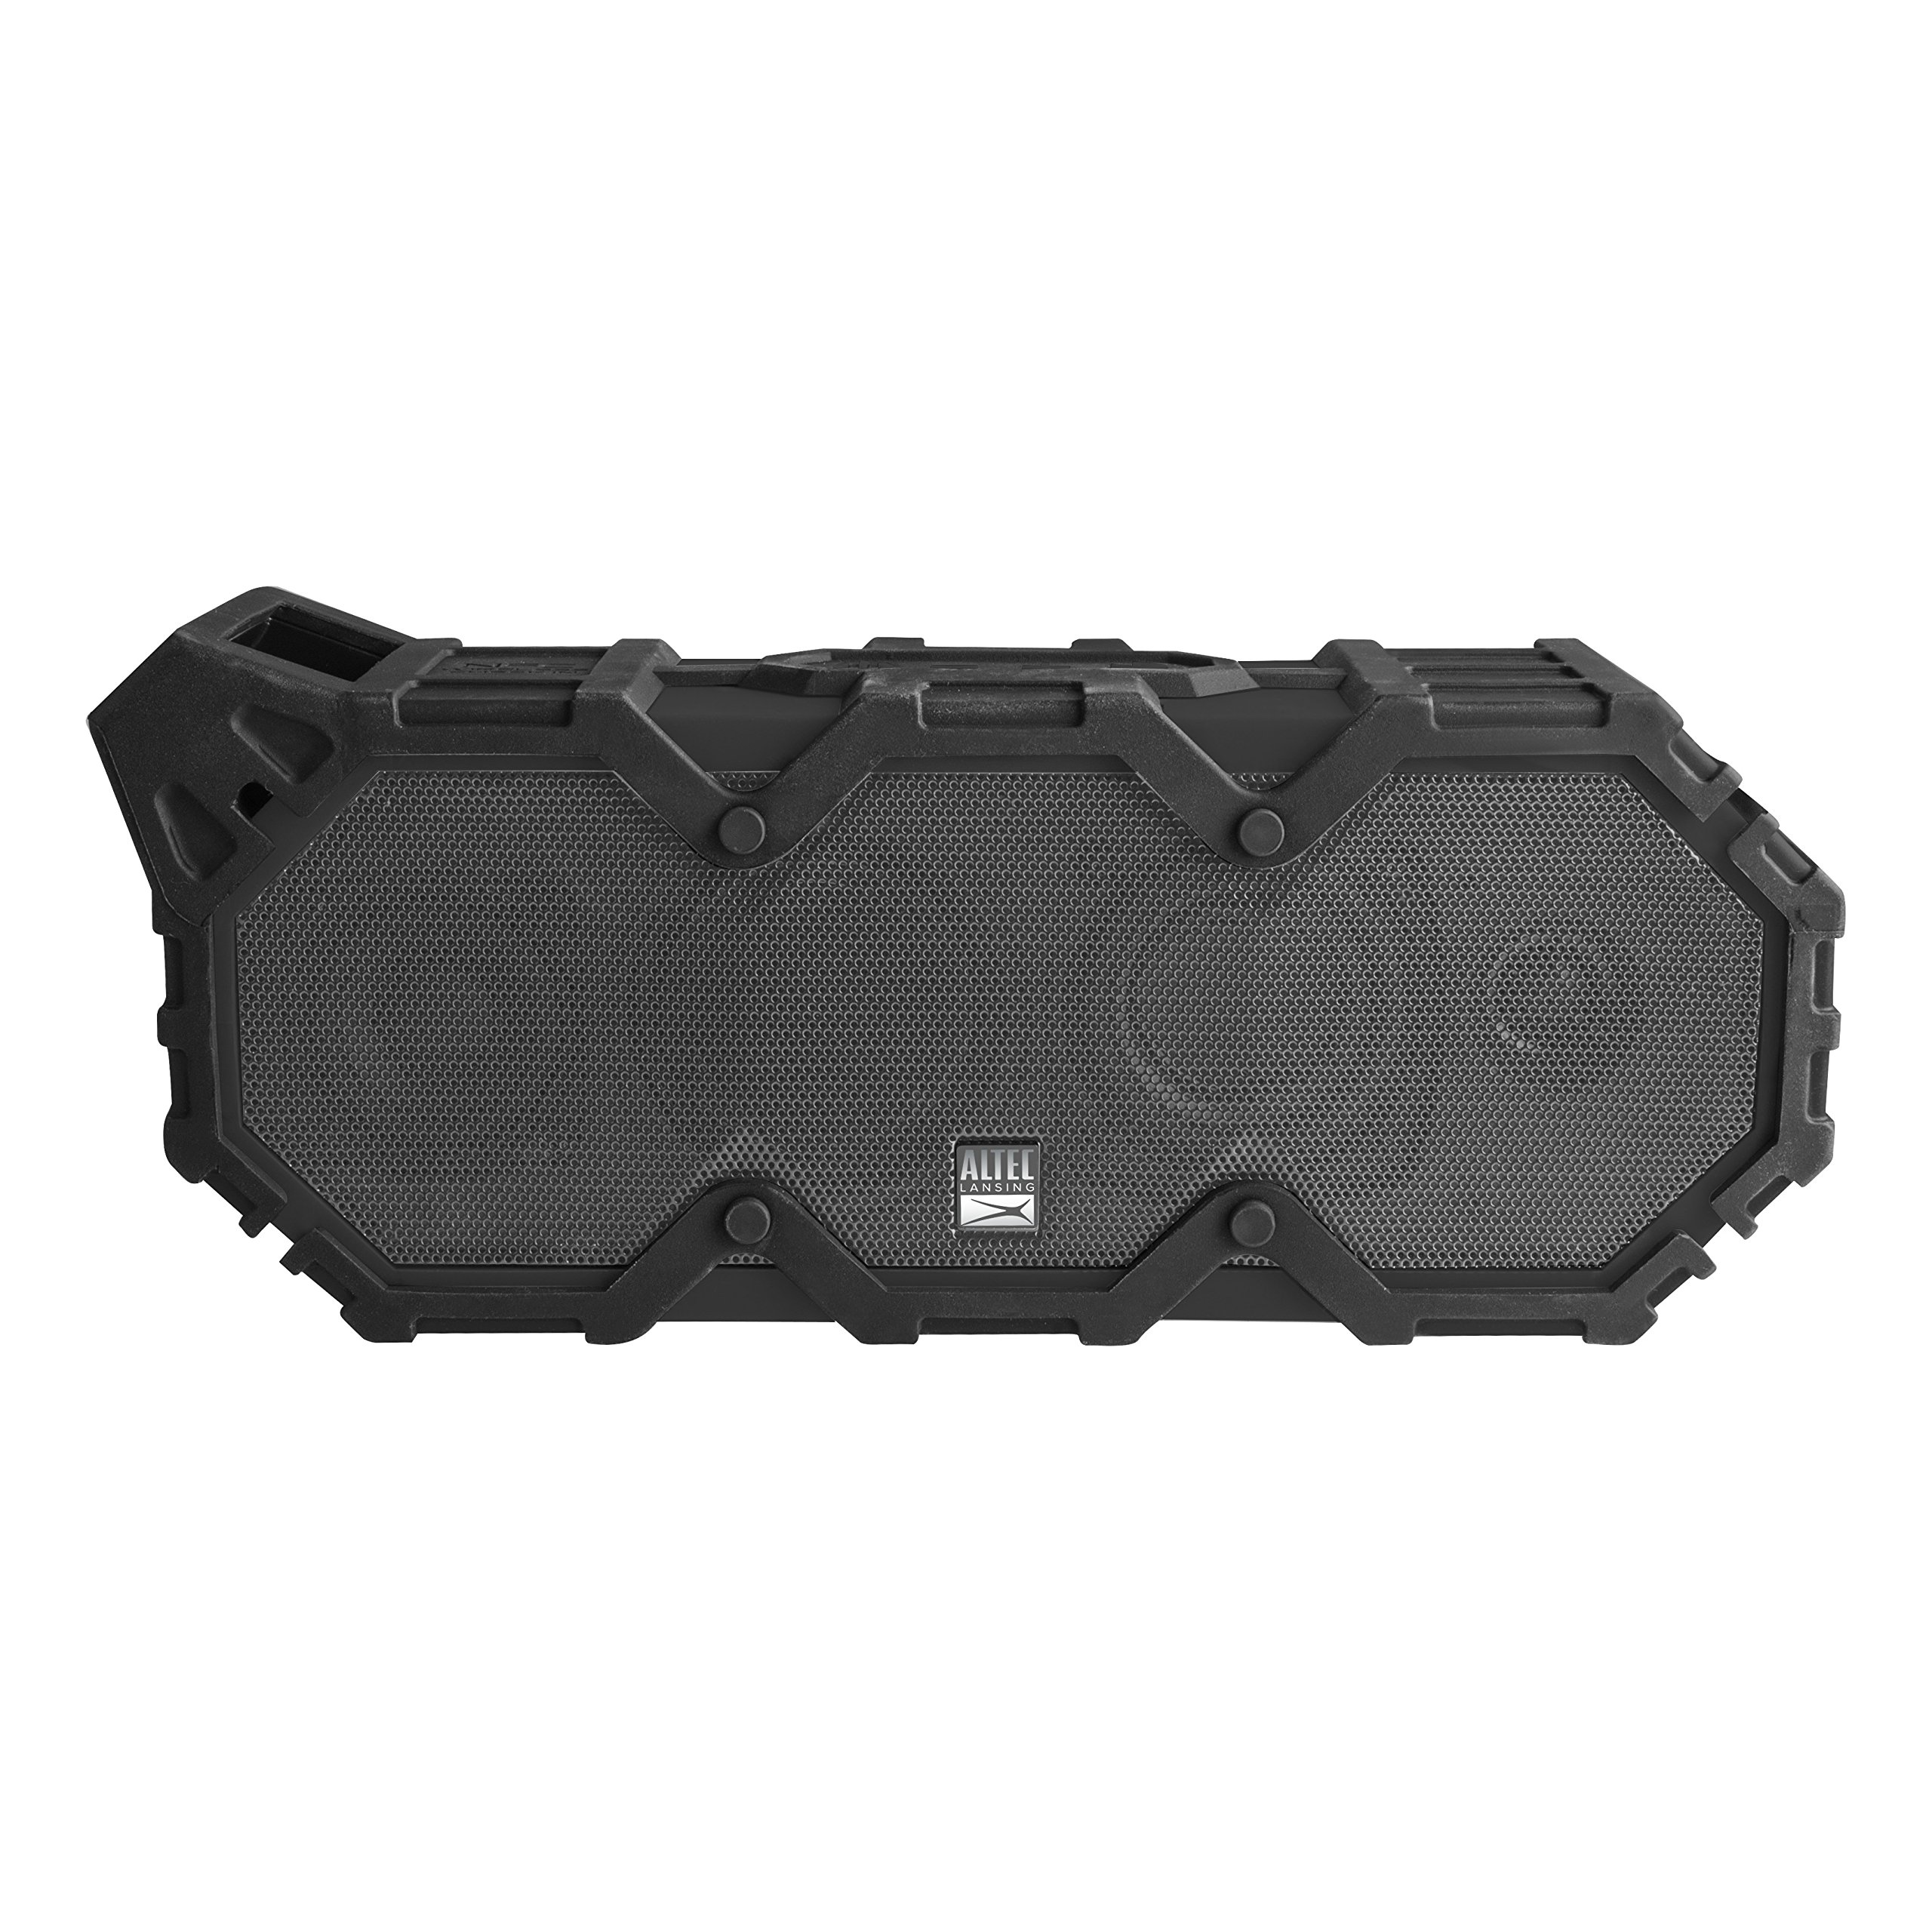 Altec Lansing IMW789-BLG LifeJacket XL Wireless Waterproof Floatable Bluetooth Speaker with 100 ft Wireless range, 40 Hours of Battery Life, and Stereo Pairing, Black/Grey